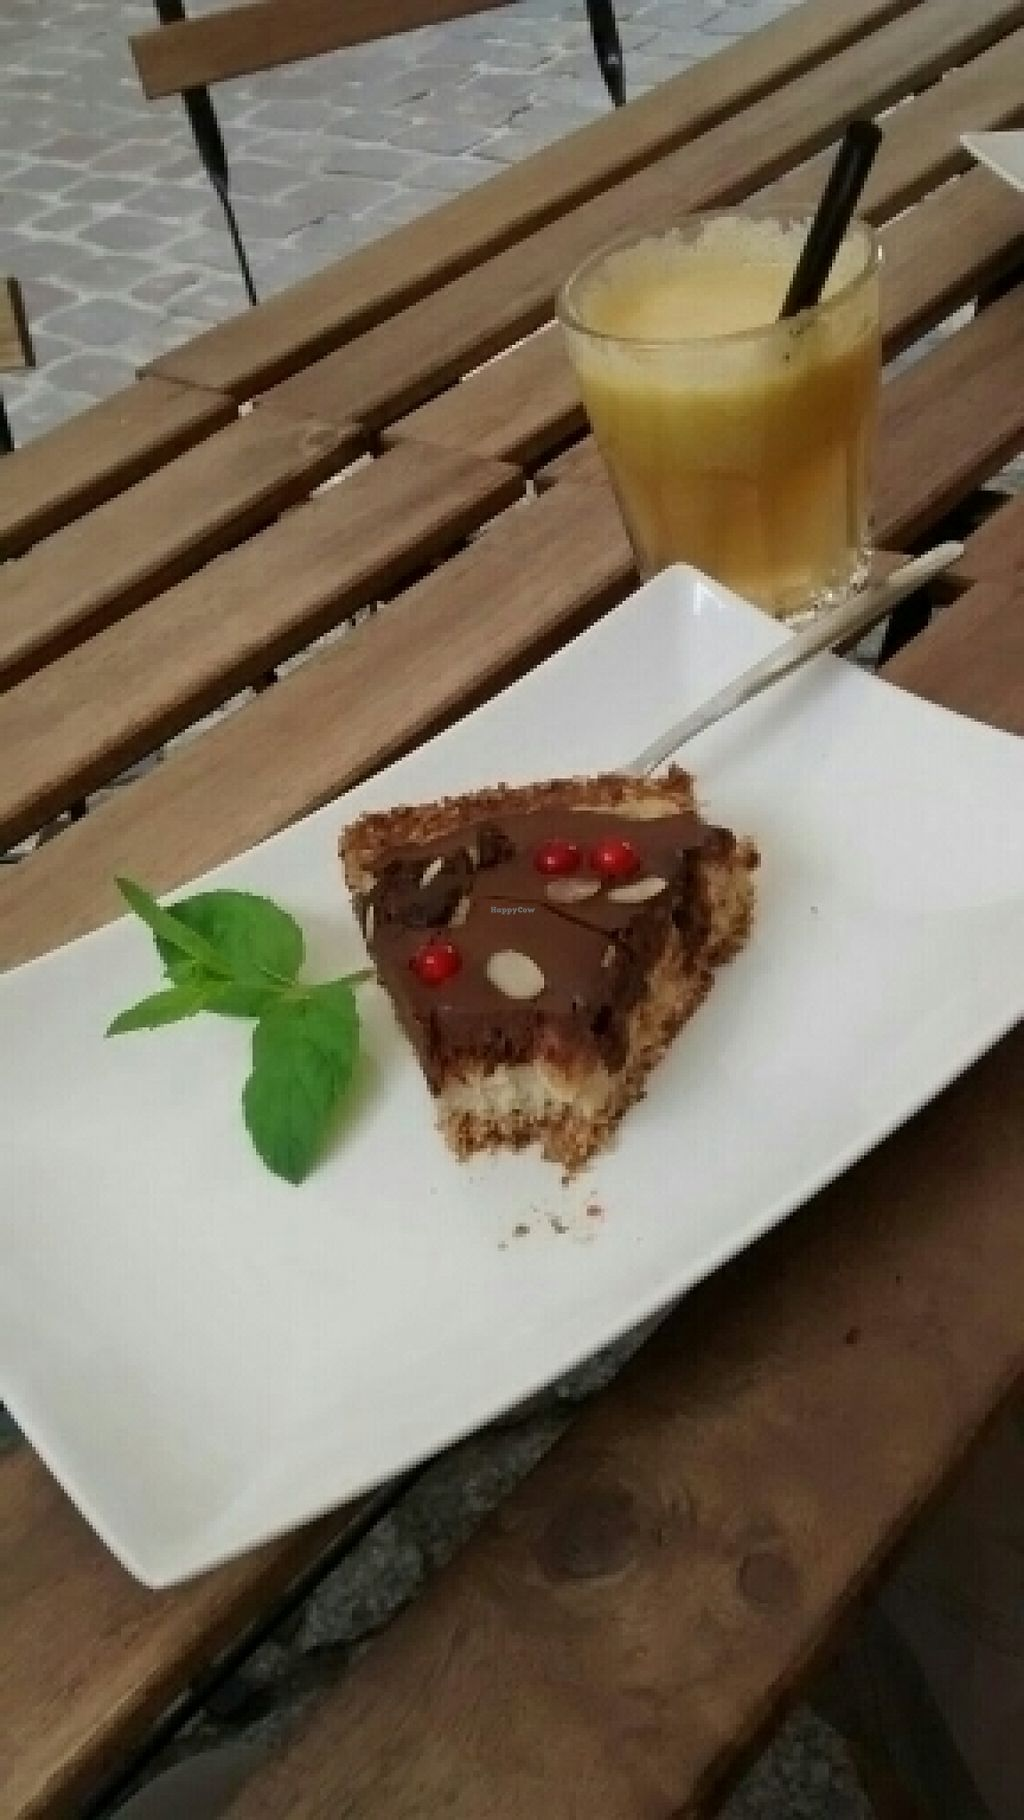 """Photo of Zapalka Coffee  by <a href=""""/members/profile/Bountalis"""">Bountalis</a> <br/>Rohveganer Kuchen für 9 zloty + frisch gepresster Apfelsaft <br/> July 25, 2016  - <a href='/contact/abuse/image/74562/162265'>Report</a>"""